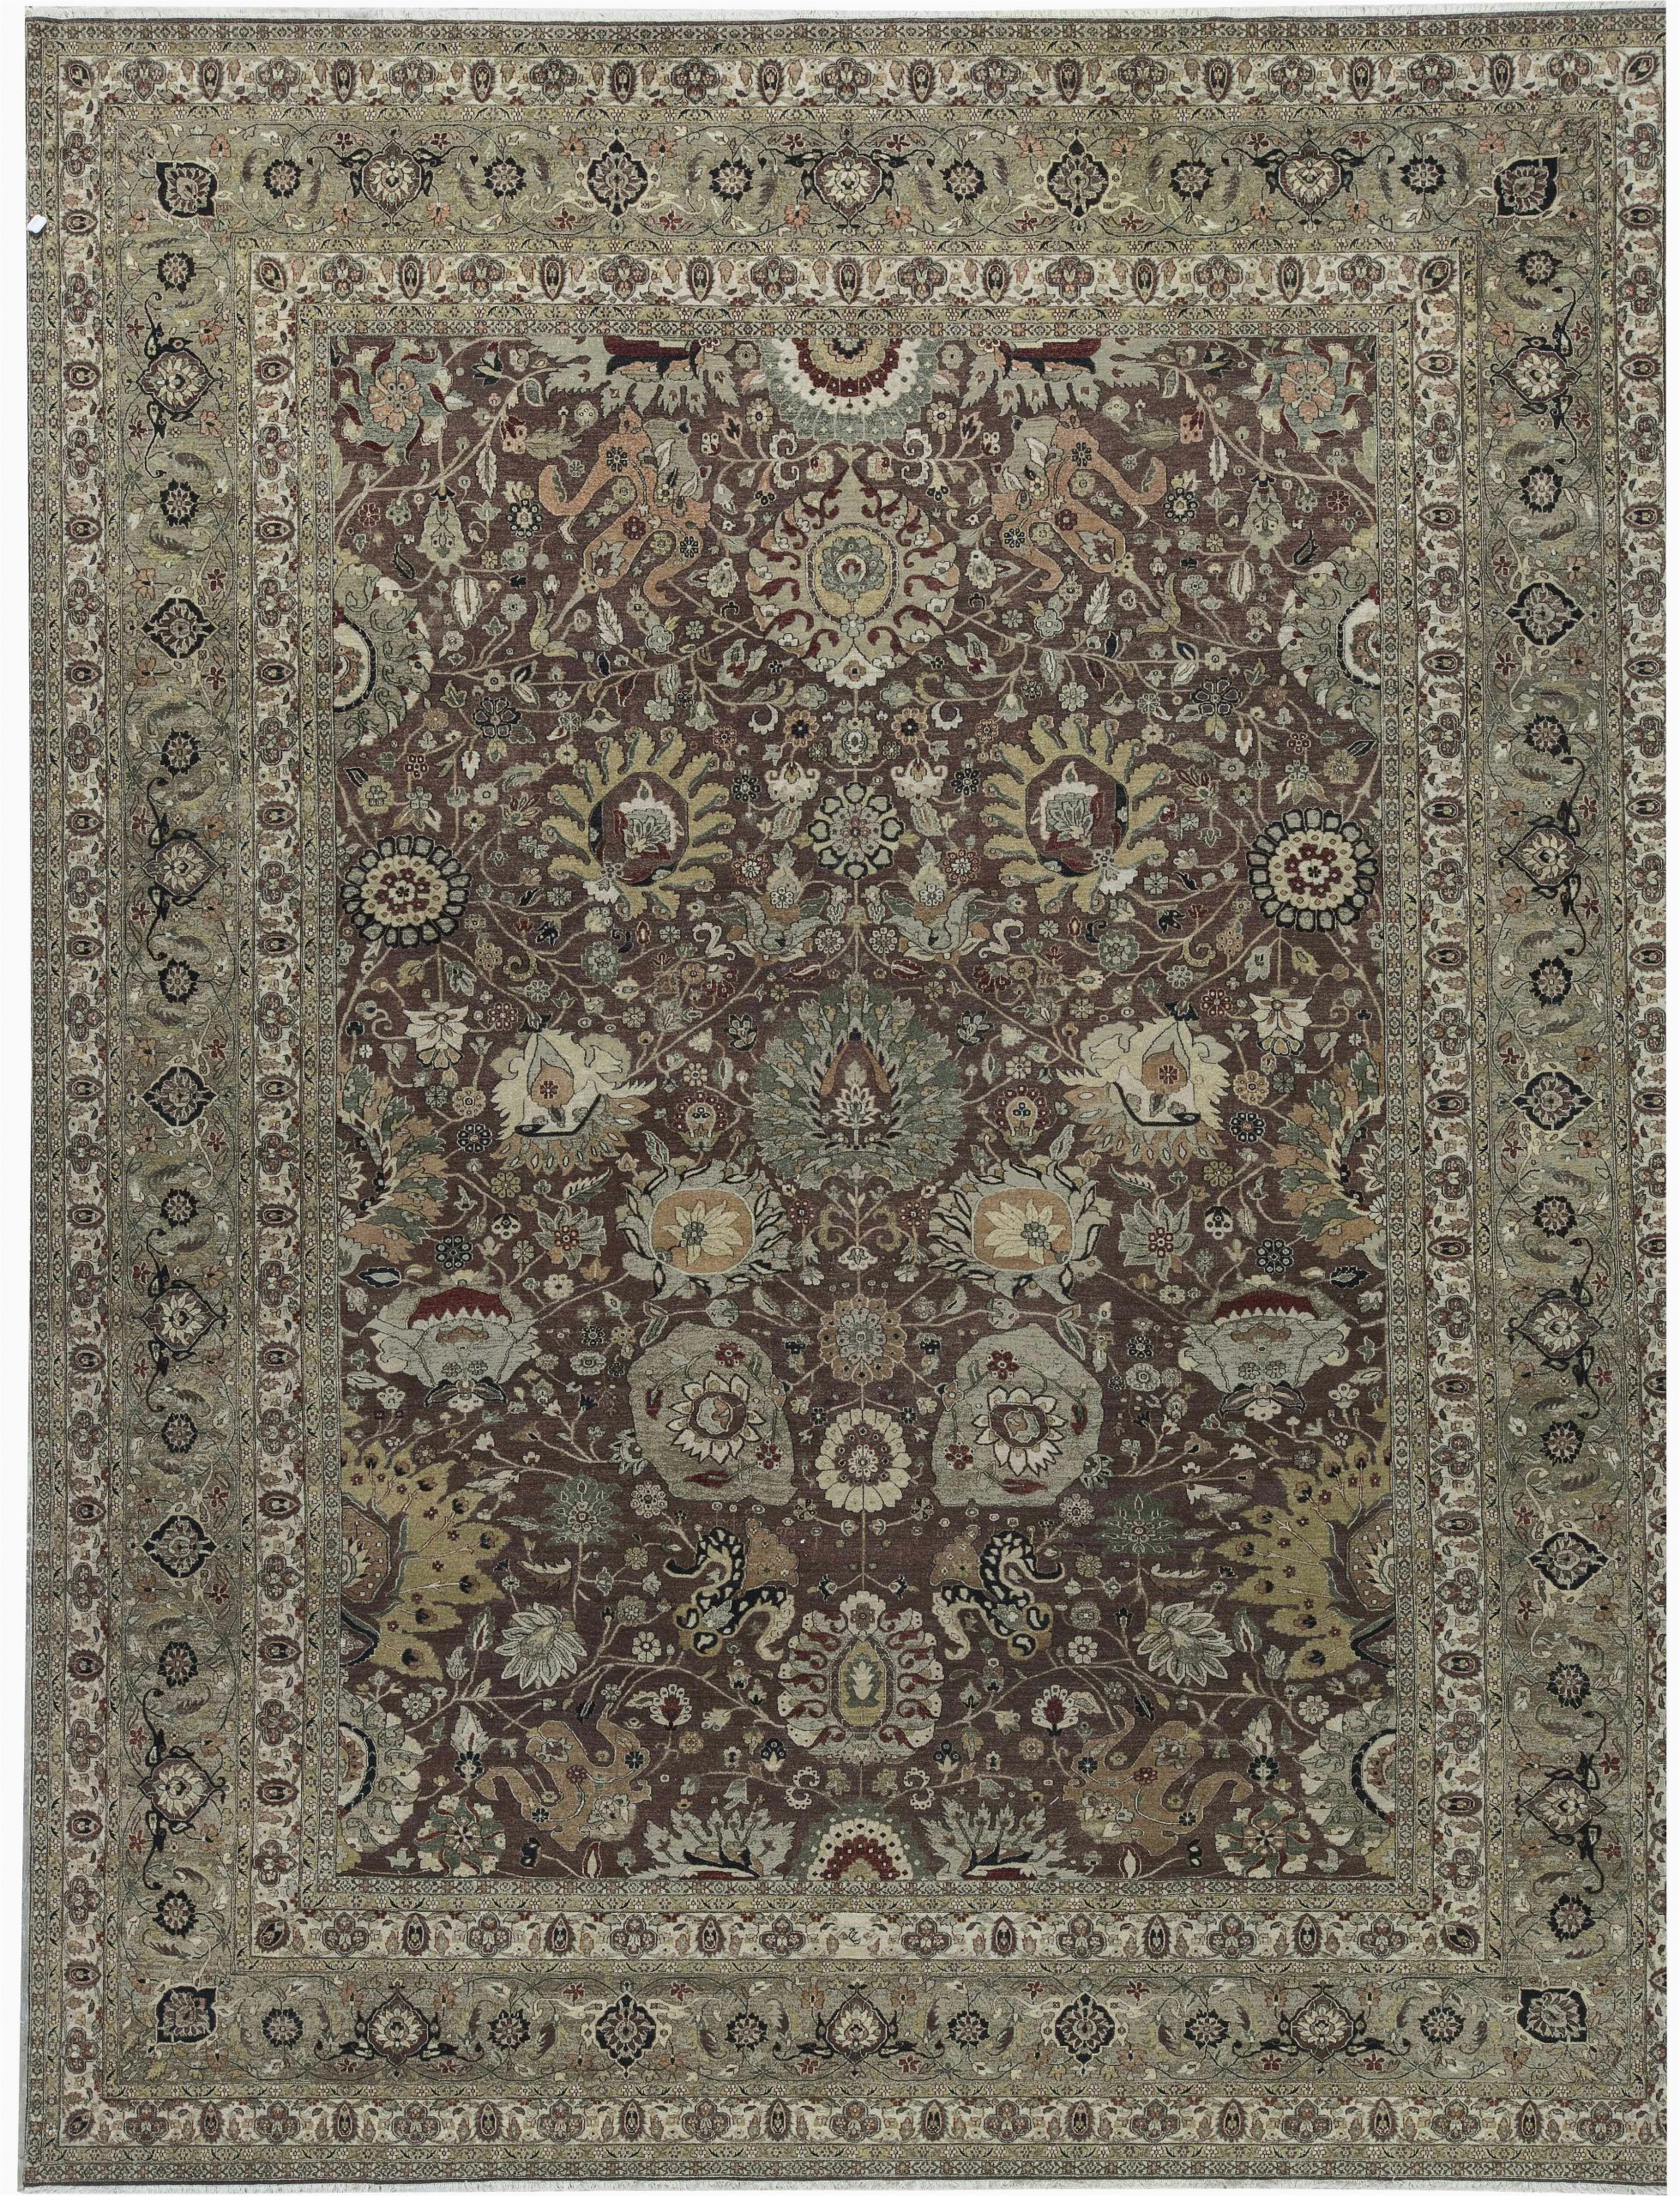 bokara rug co inc one of a kind hand knotted redgray 1210 x 1610 wool area rug abhd2483